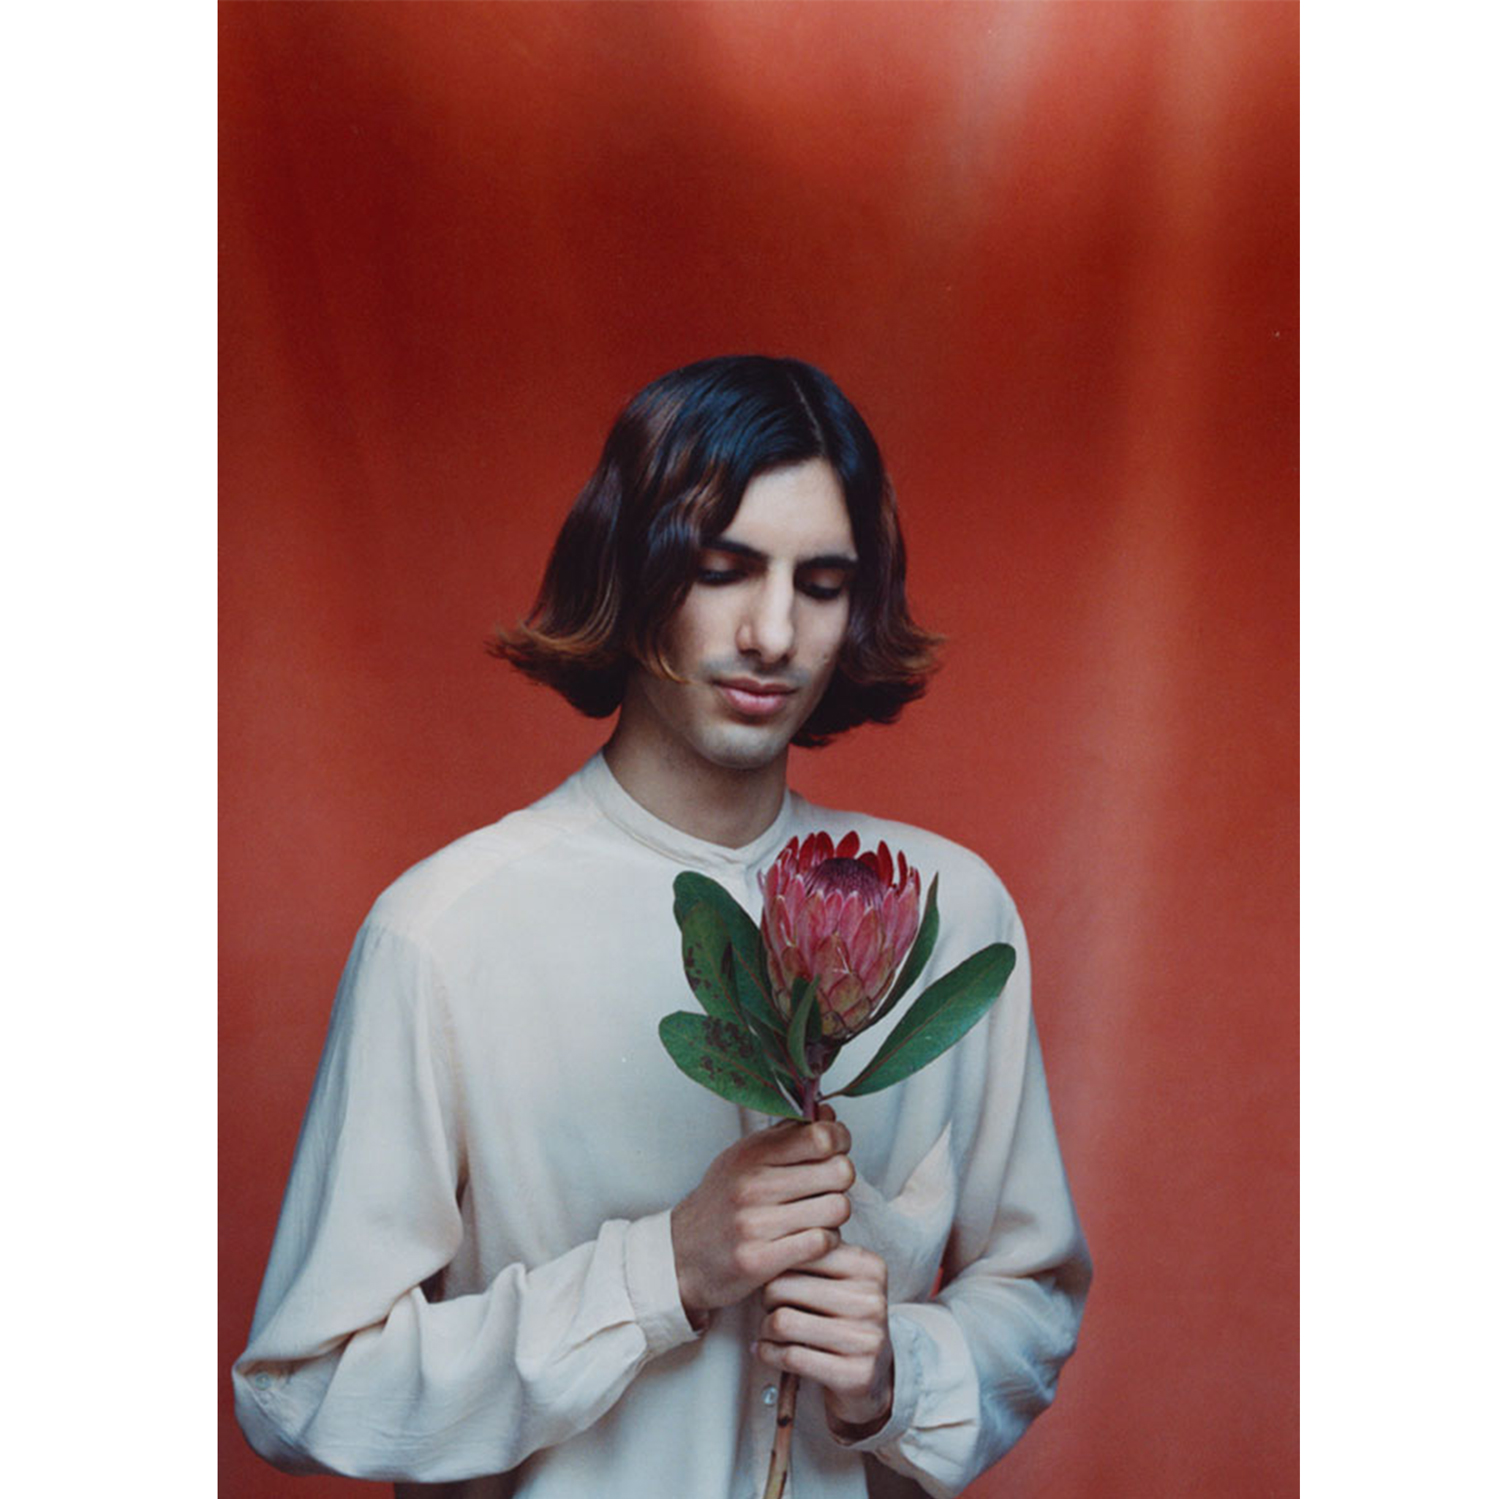 Daud, 2014 from the series 'Flower Boys'